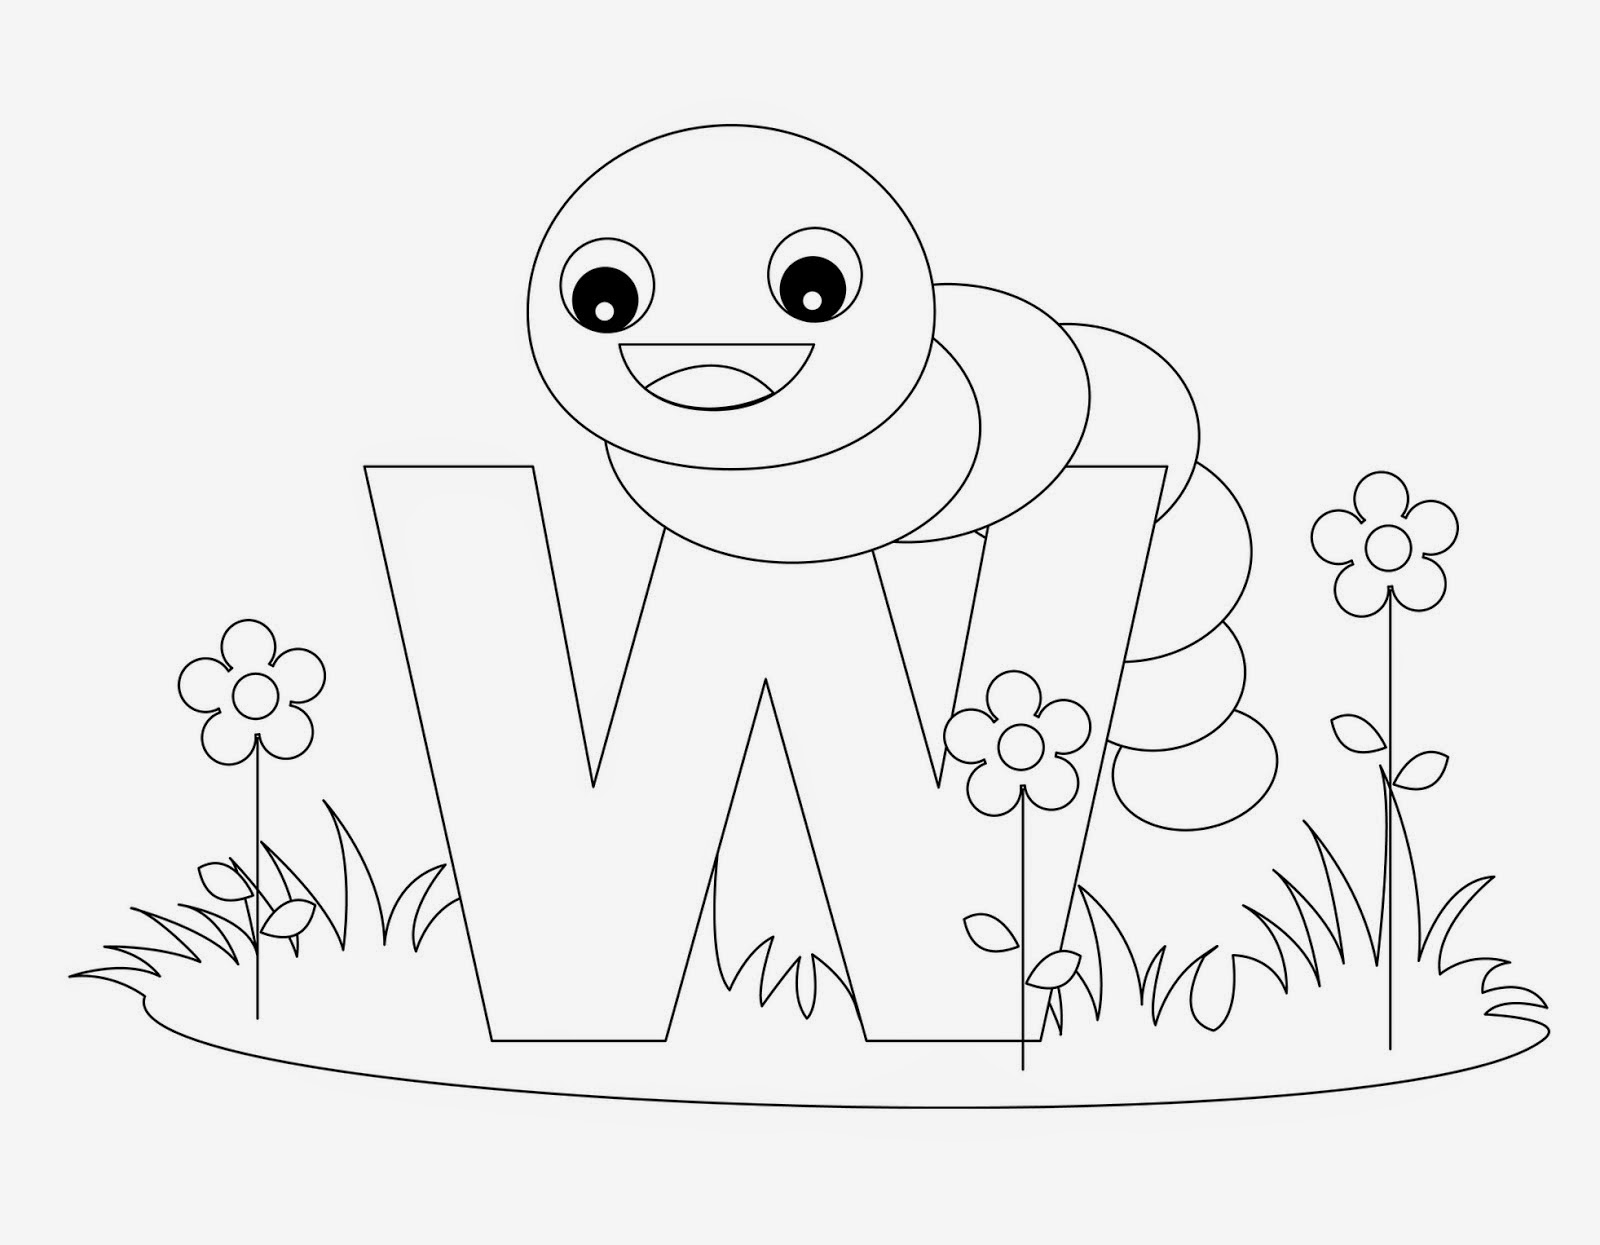 w is for water coloring page letter w coloring pages getcoloringpagescom coloring is water page for w